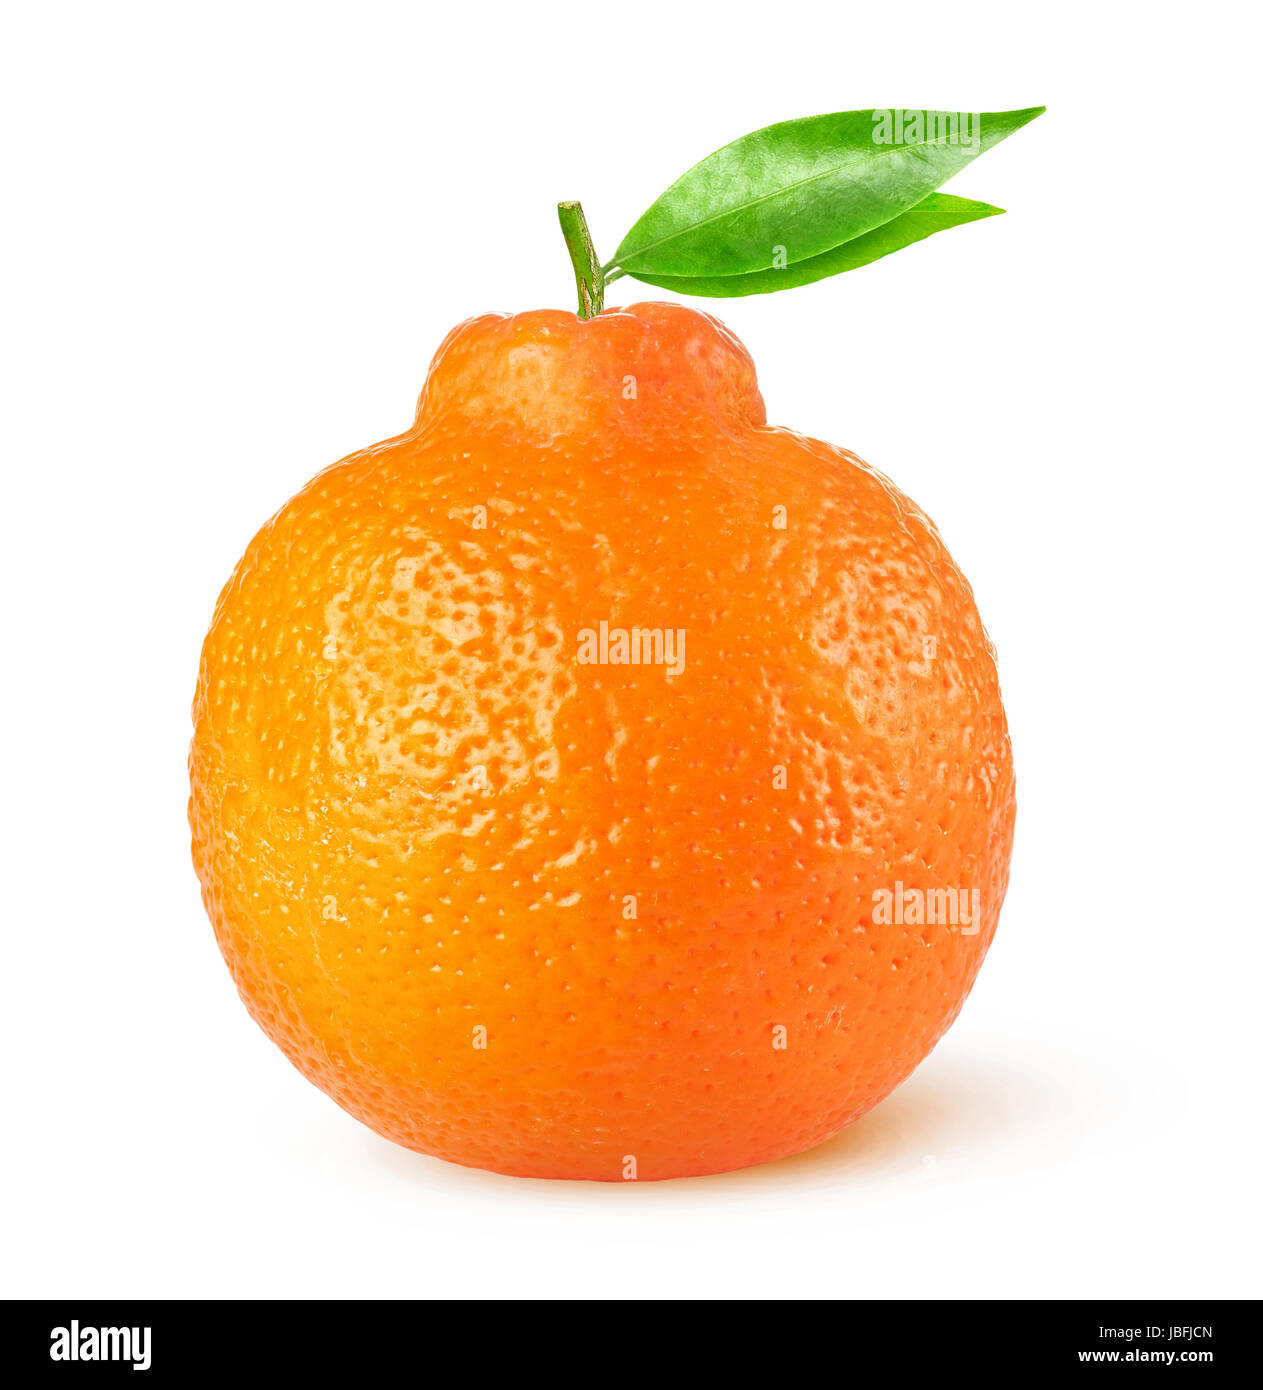 Isolated citrus fruit. One minneola tangelo with leaves isolated on white background with clipping path - Stock Image